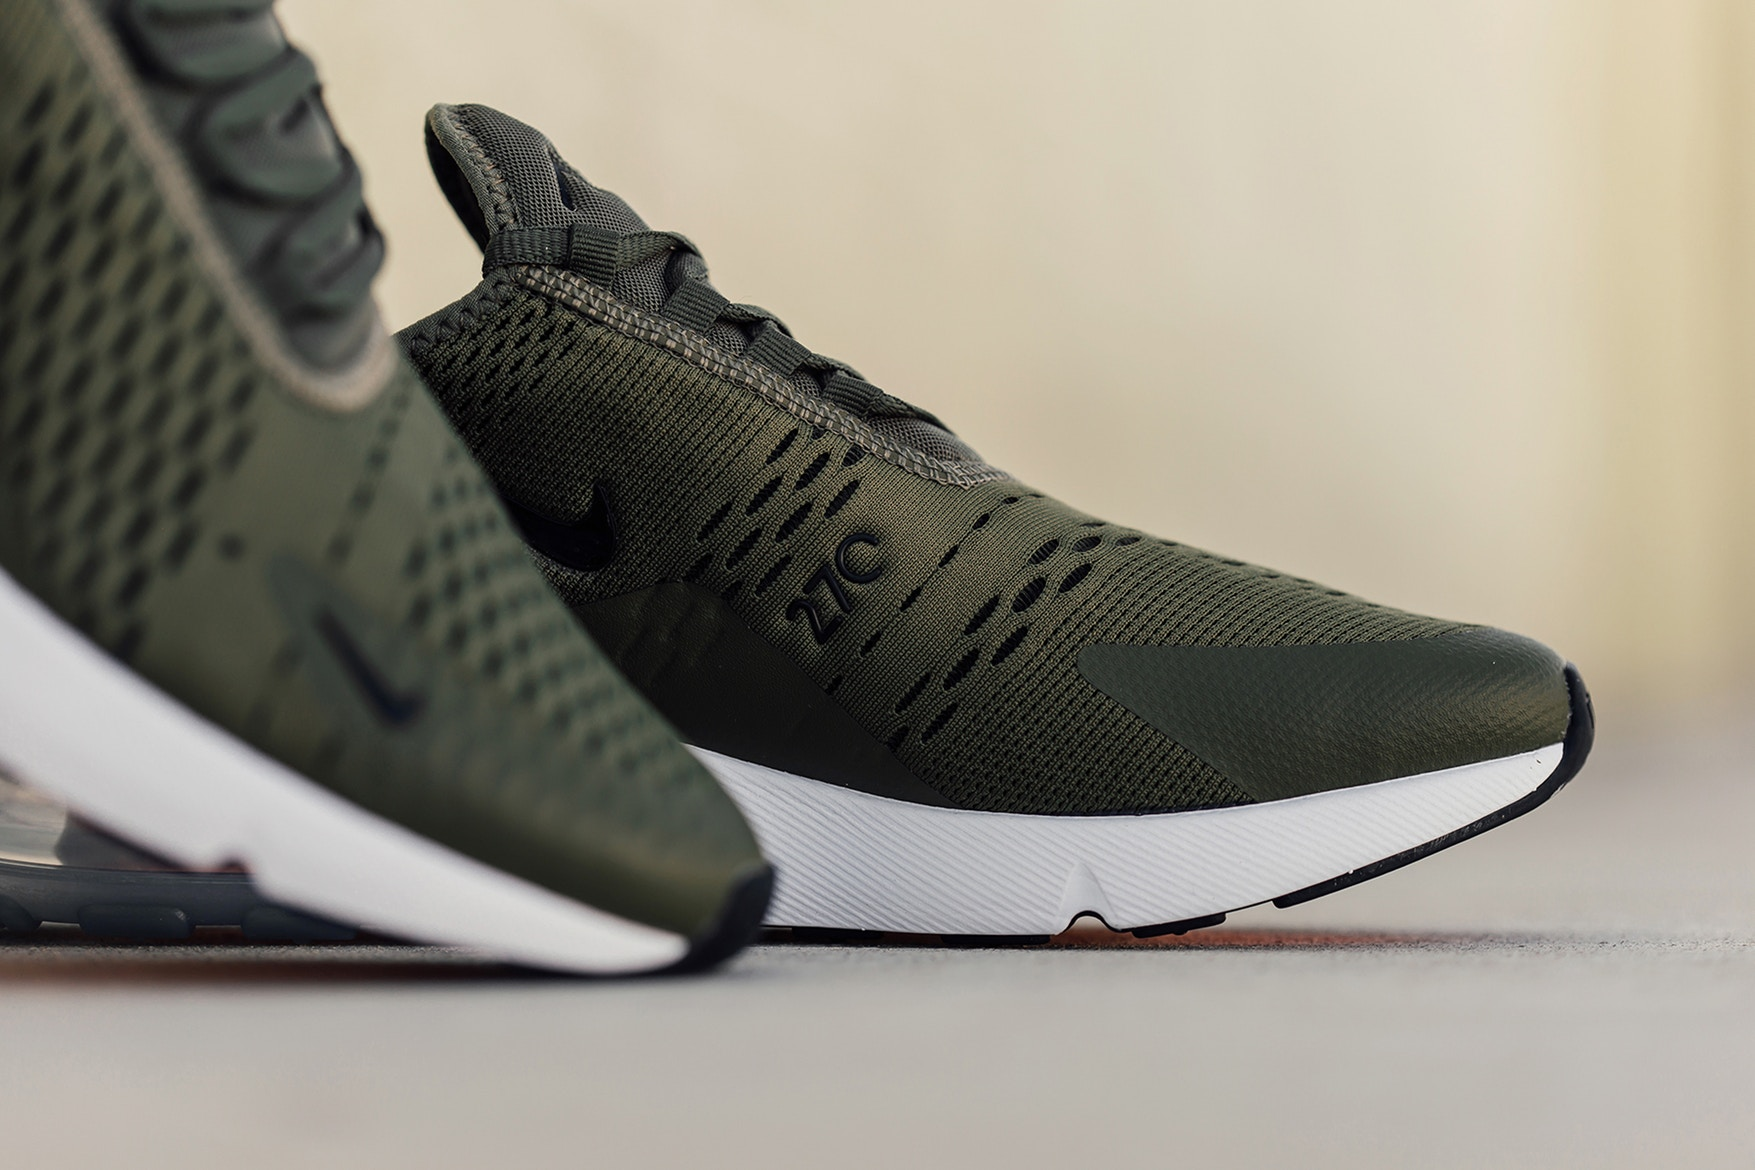 nike air max 270 medio olive: fashionmood